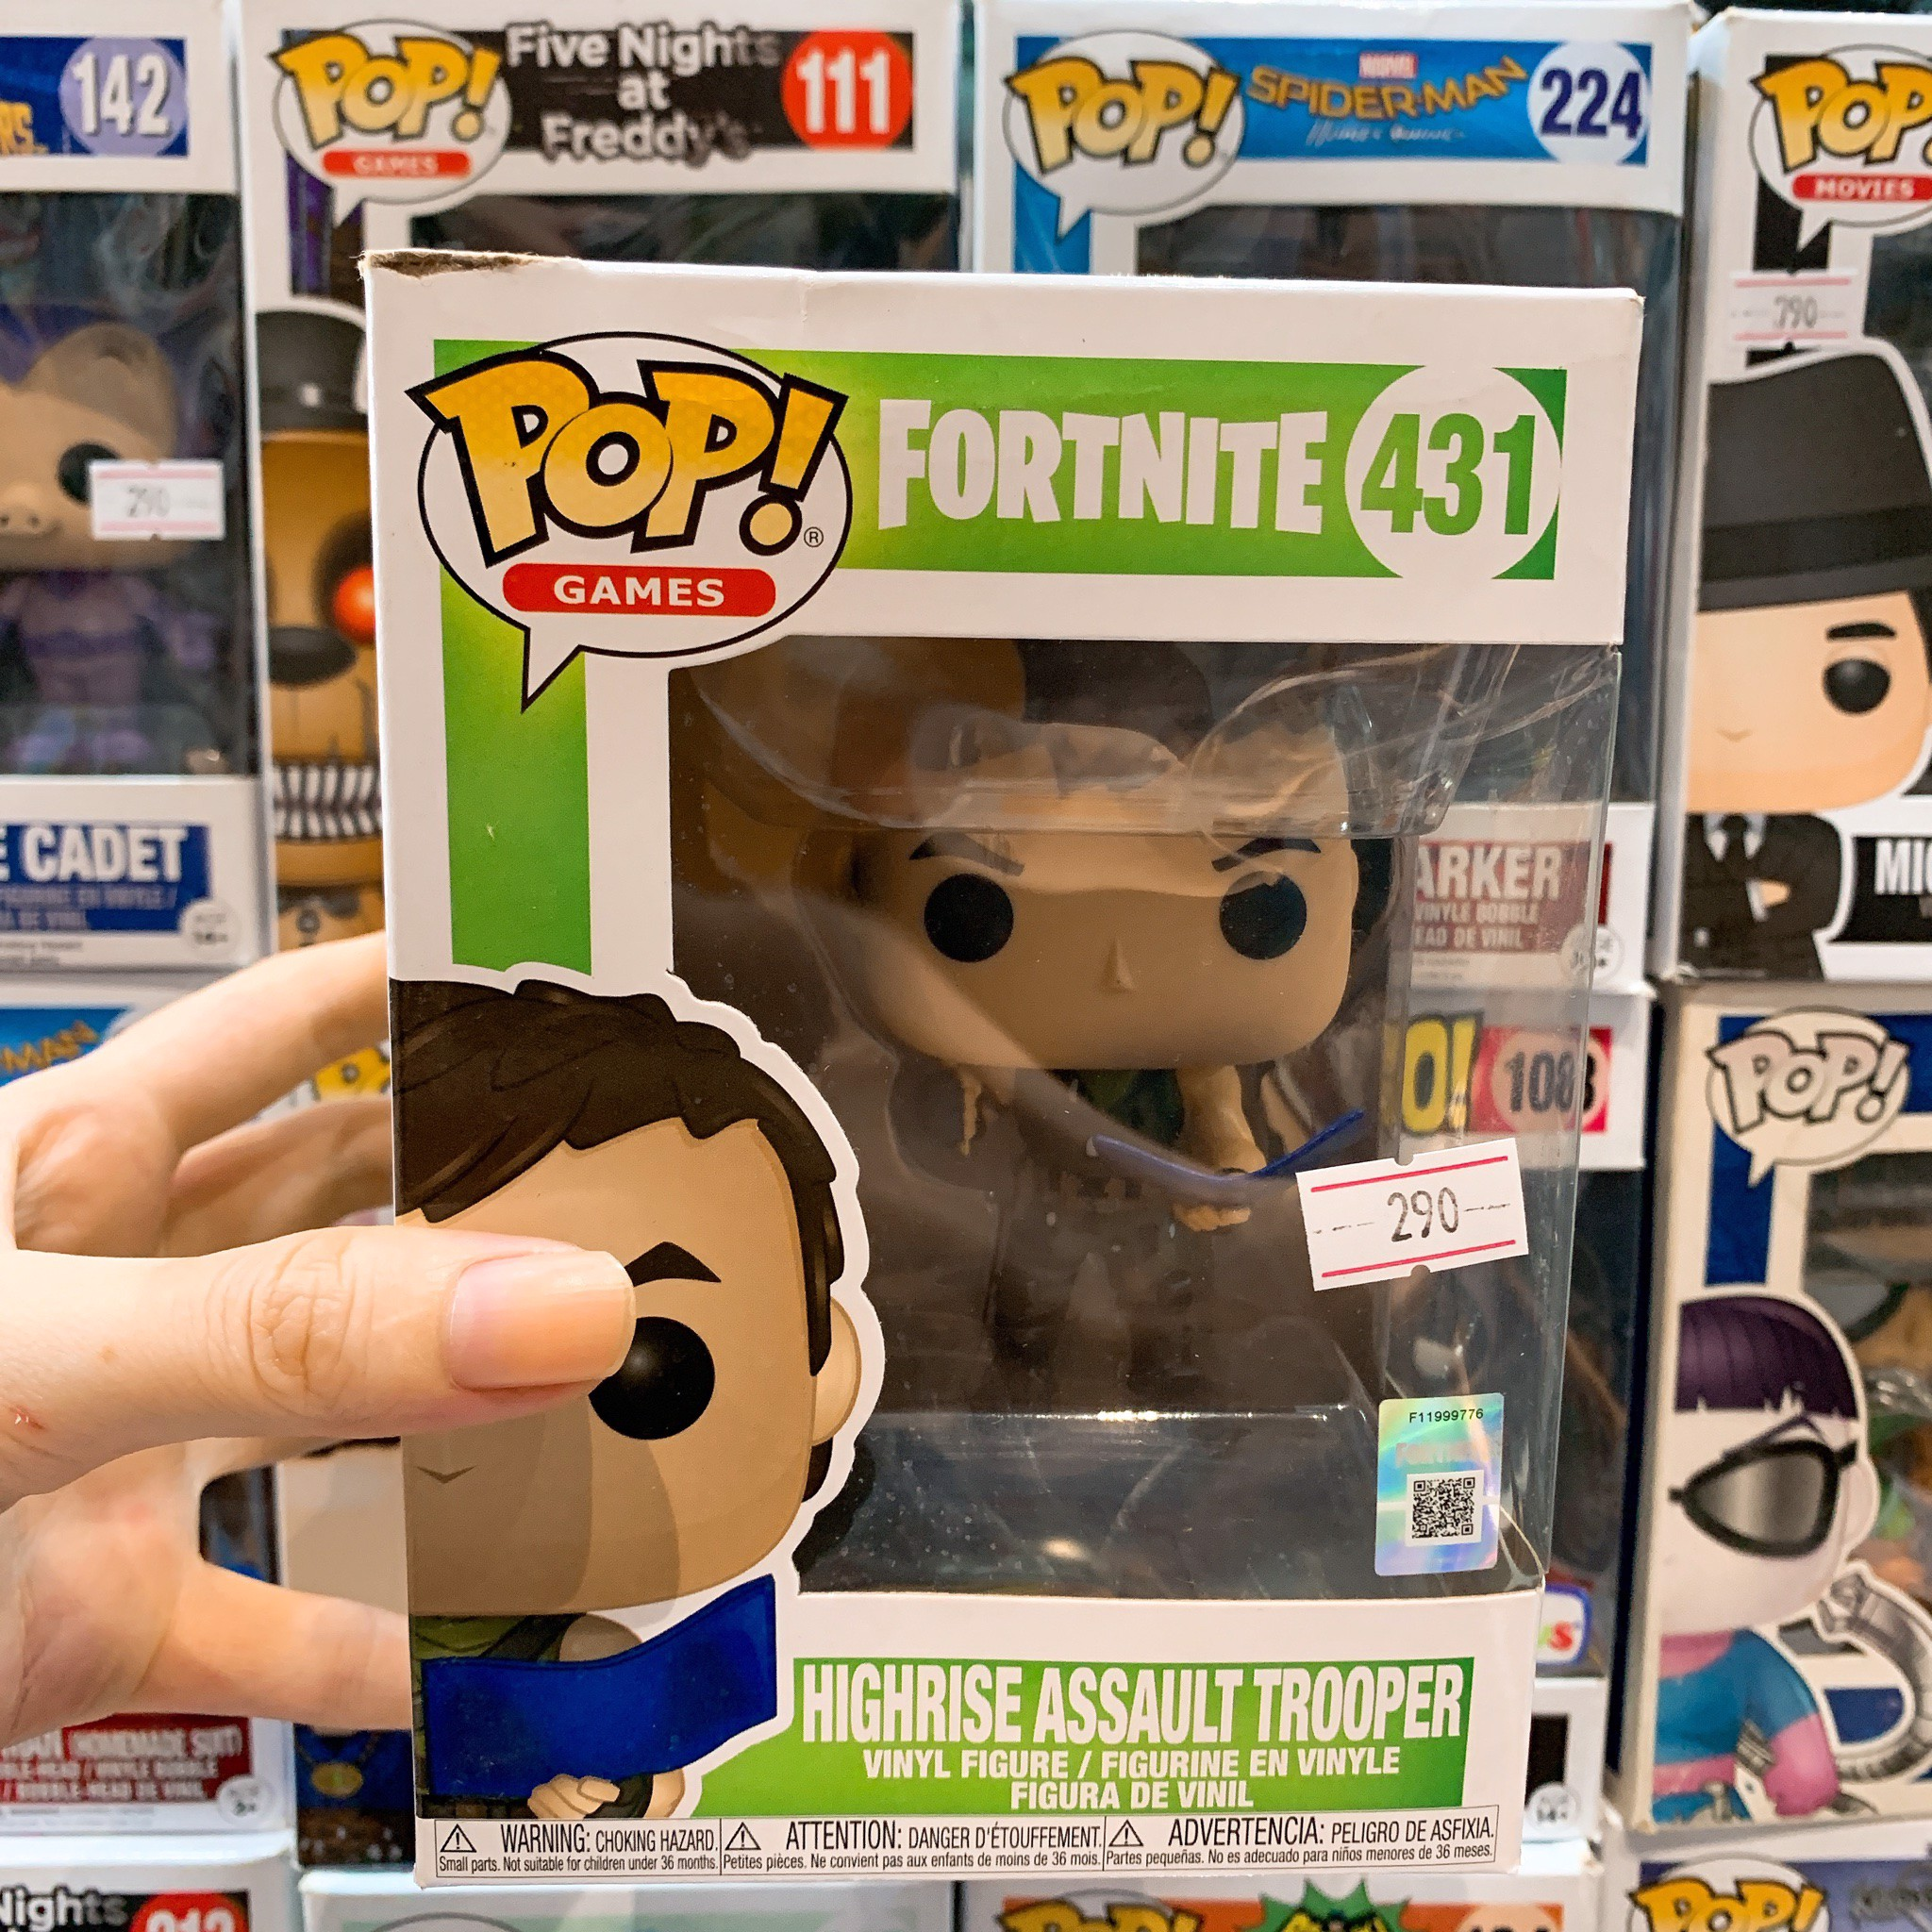 [CÓ SẴN] FUNKO POP Fortnite 431 Highrise Asault Trooper